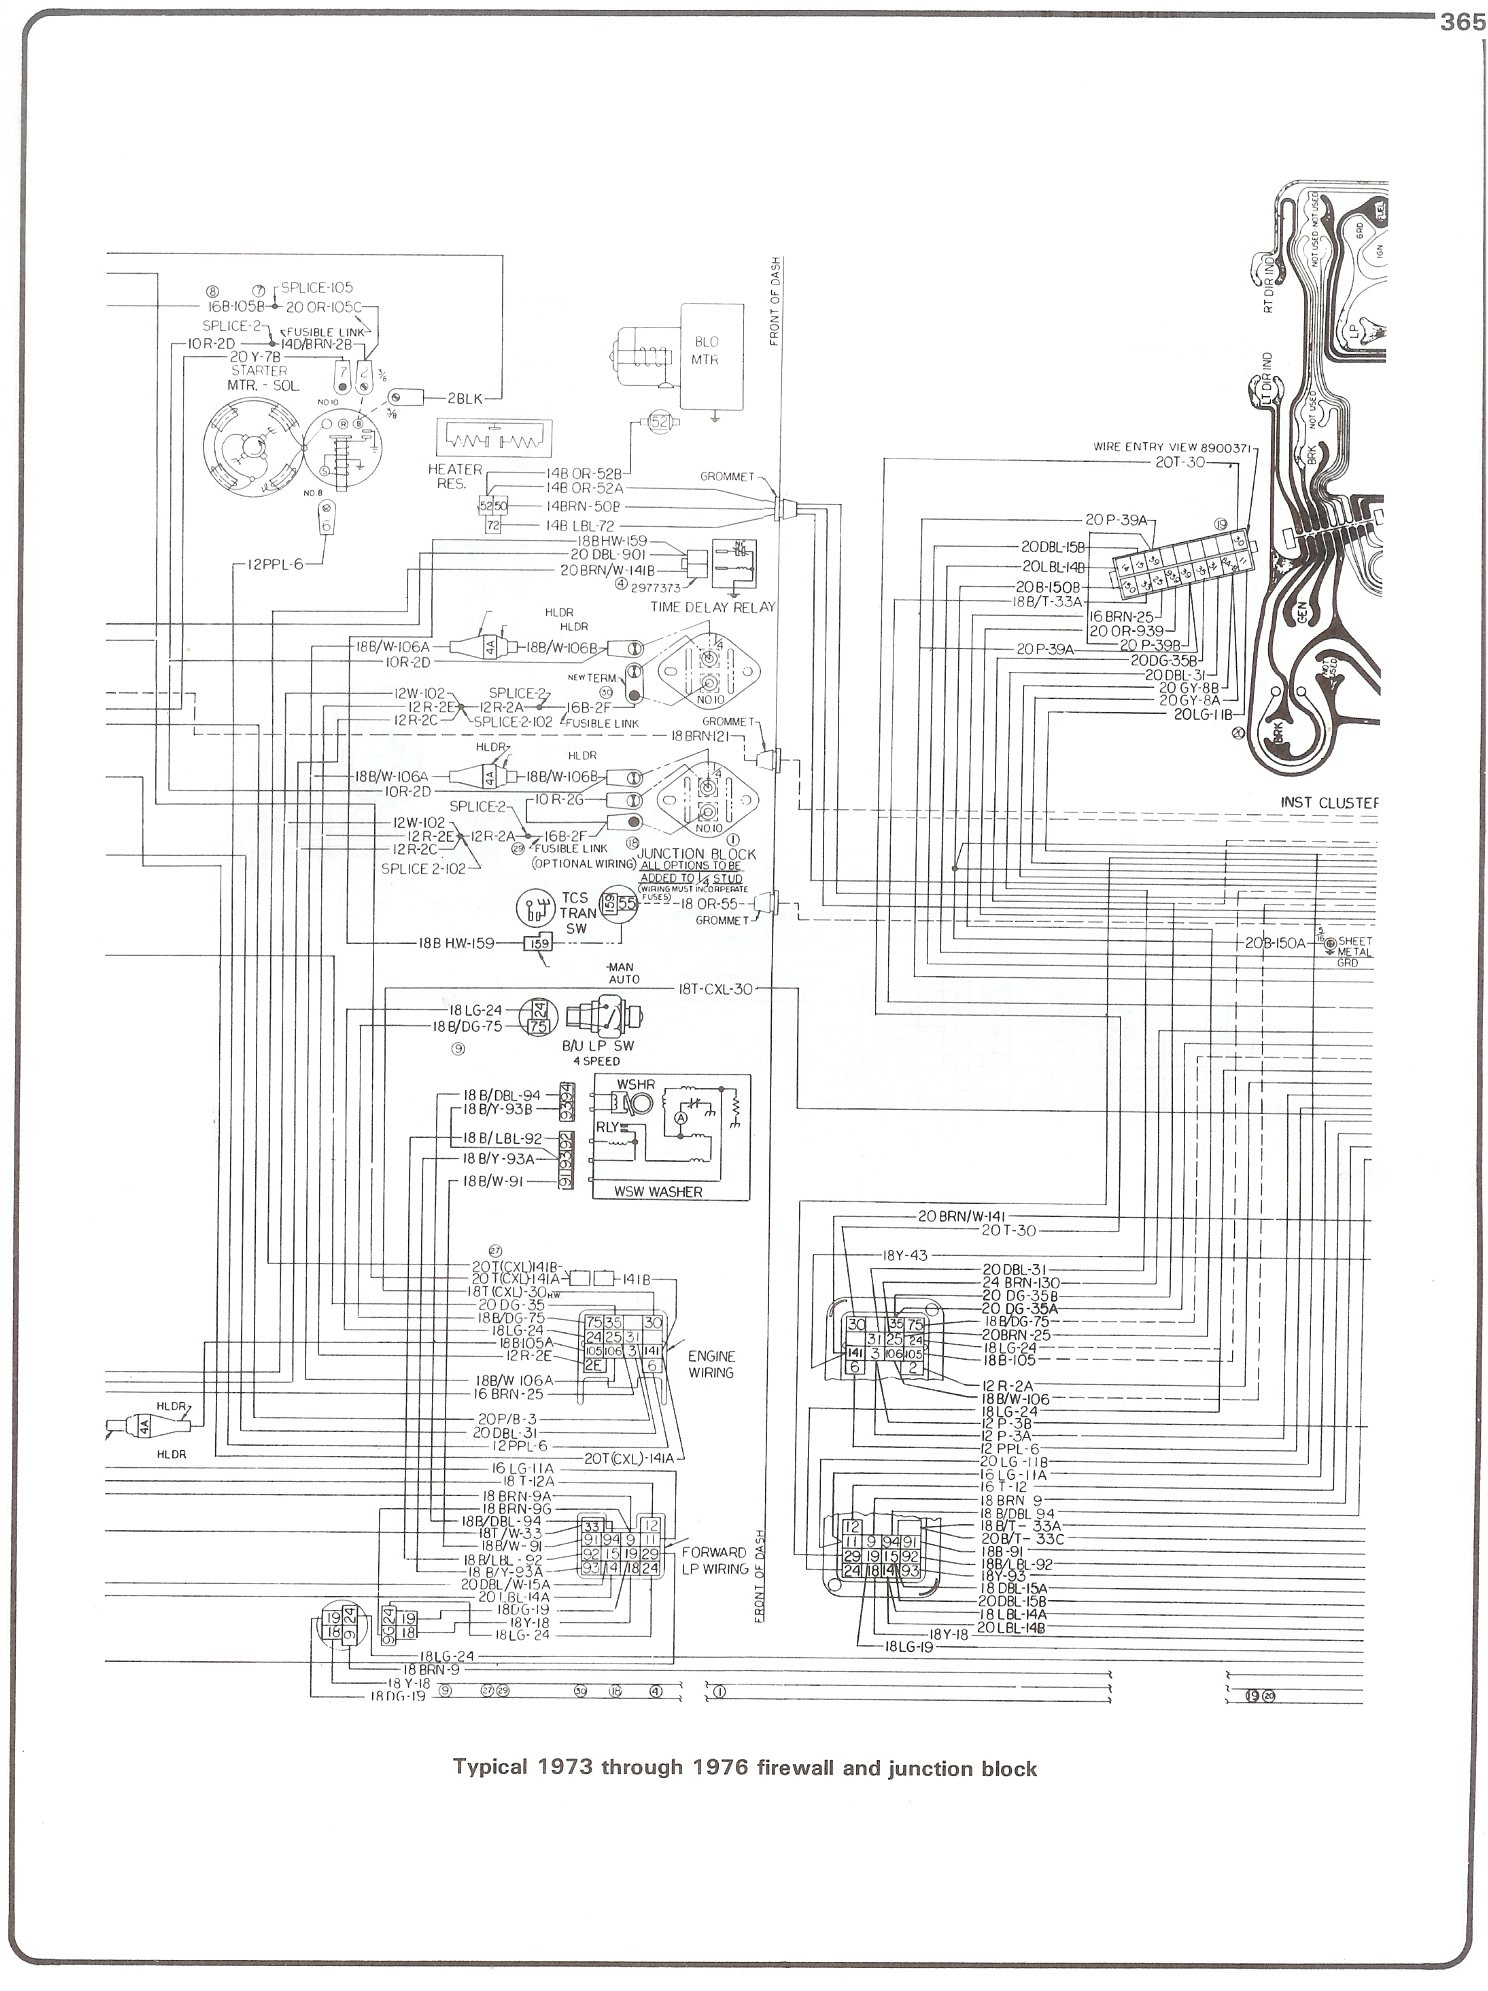 73 76_firewall_junct complete 73 87 wiring diagrams 1979 Pontiac Wiring Diagram at n-0.co